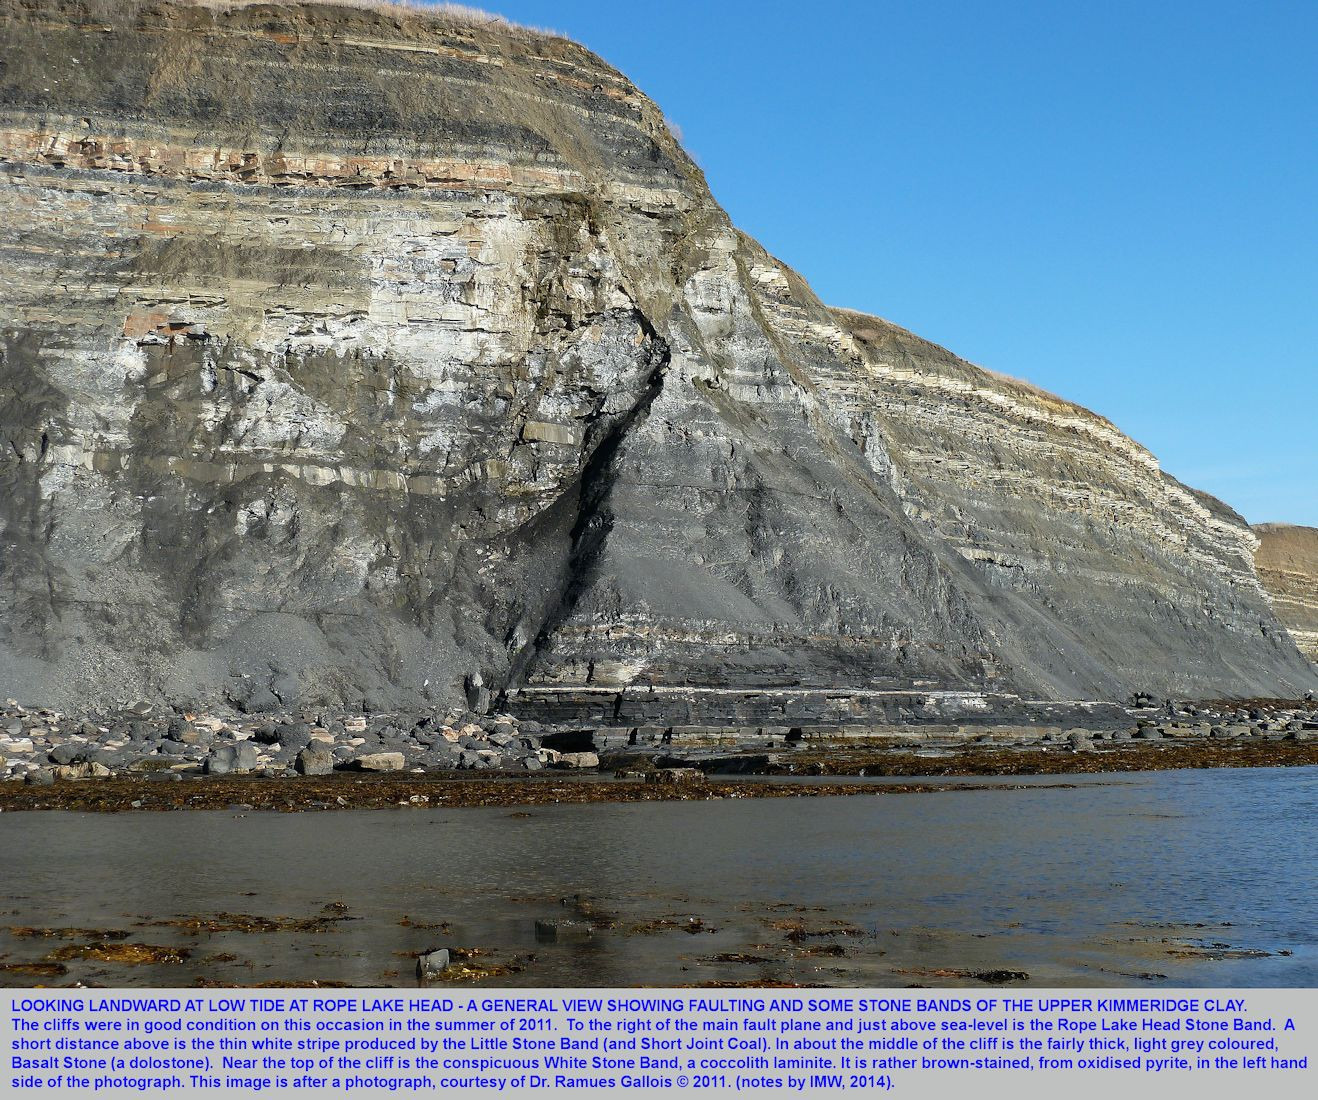 A general view of the Upper Kimmeridge Clay of Rope Lake Head cliff, seen from a seaward ledge, and photographed by Dr. Ramues Gallois, 2011, East of Kimmeridge Bay, Dorset